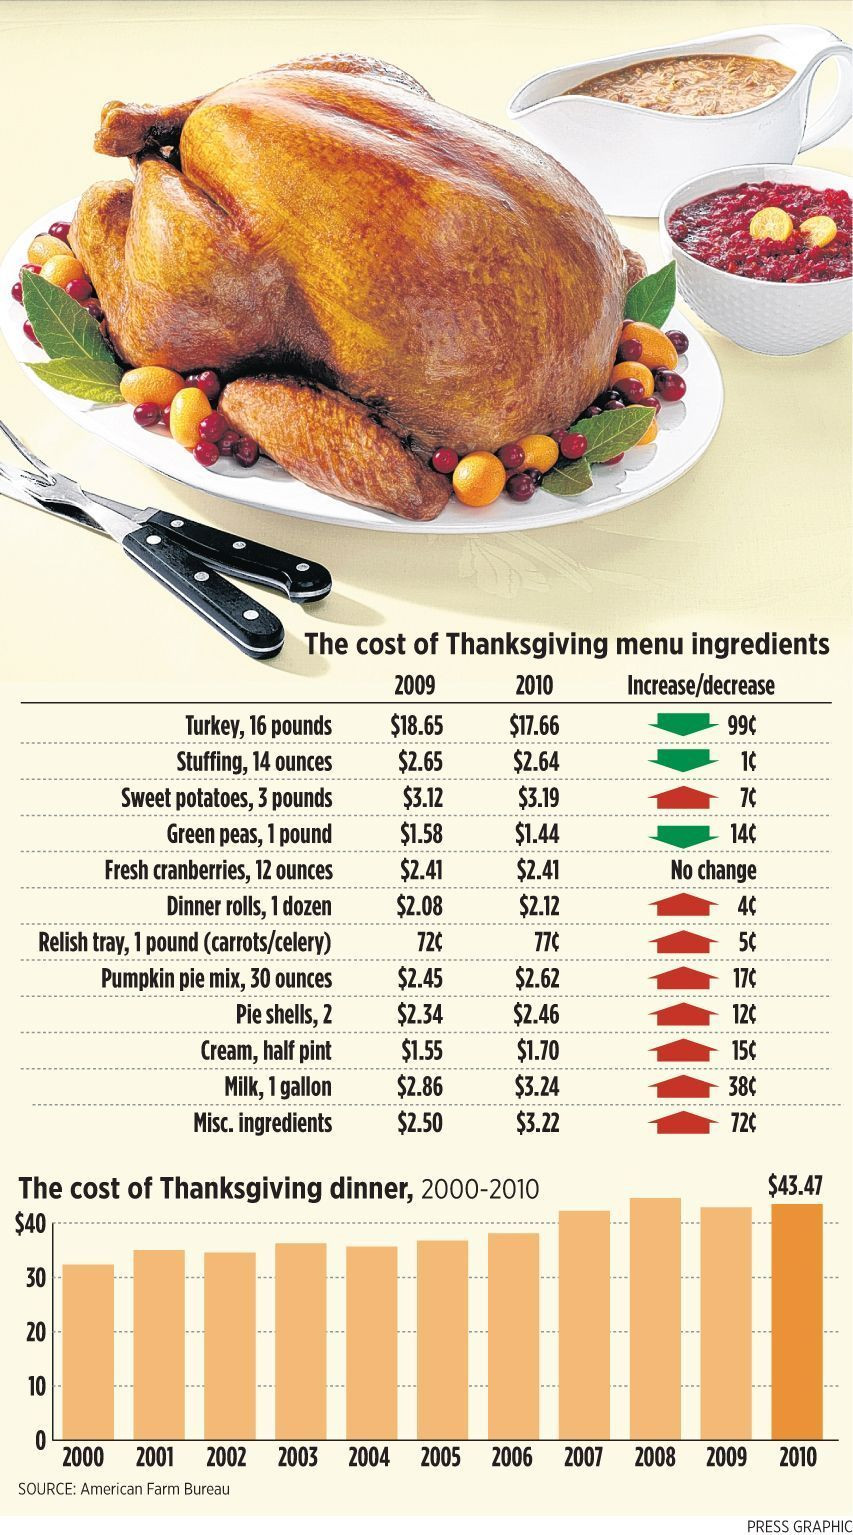 Cub Foods Thanksgiving Dinners  Find out the cost of a 2010 Thanksgiving turkey dinner for